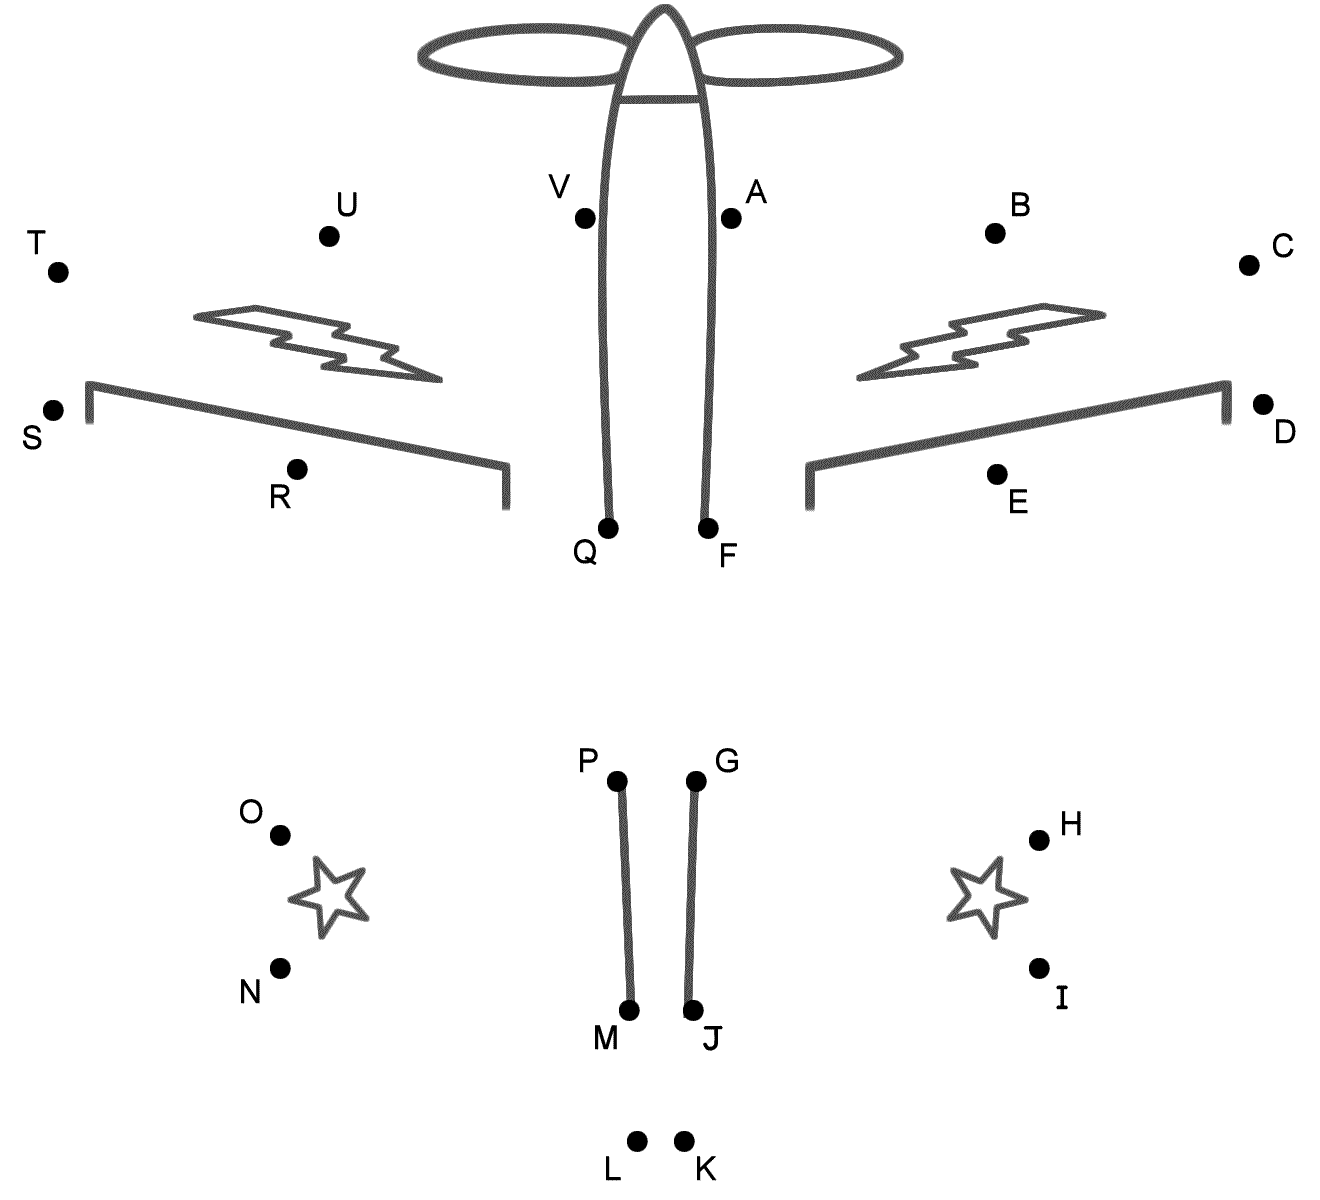 propeller airplane connect the dots by capital letters military